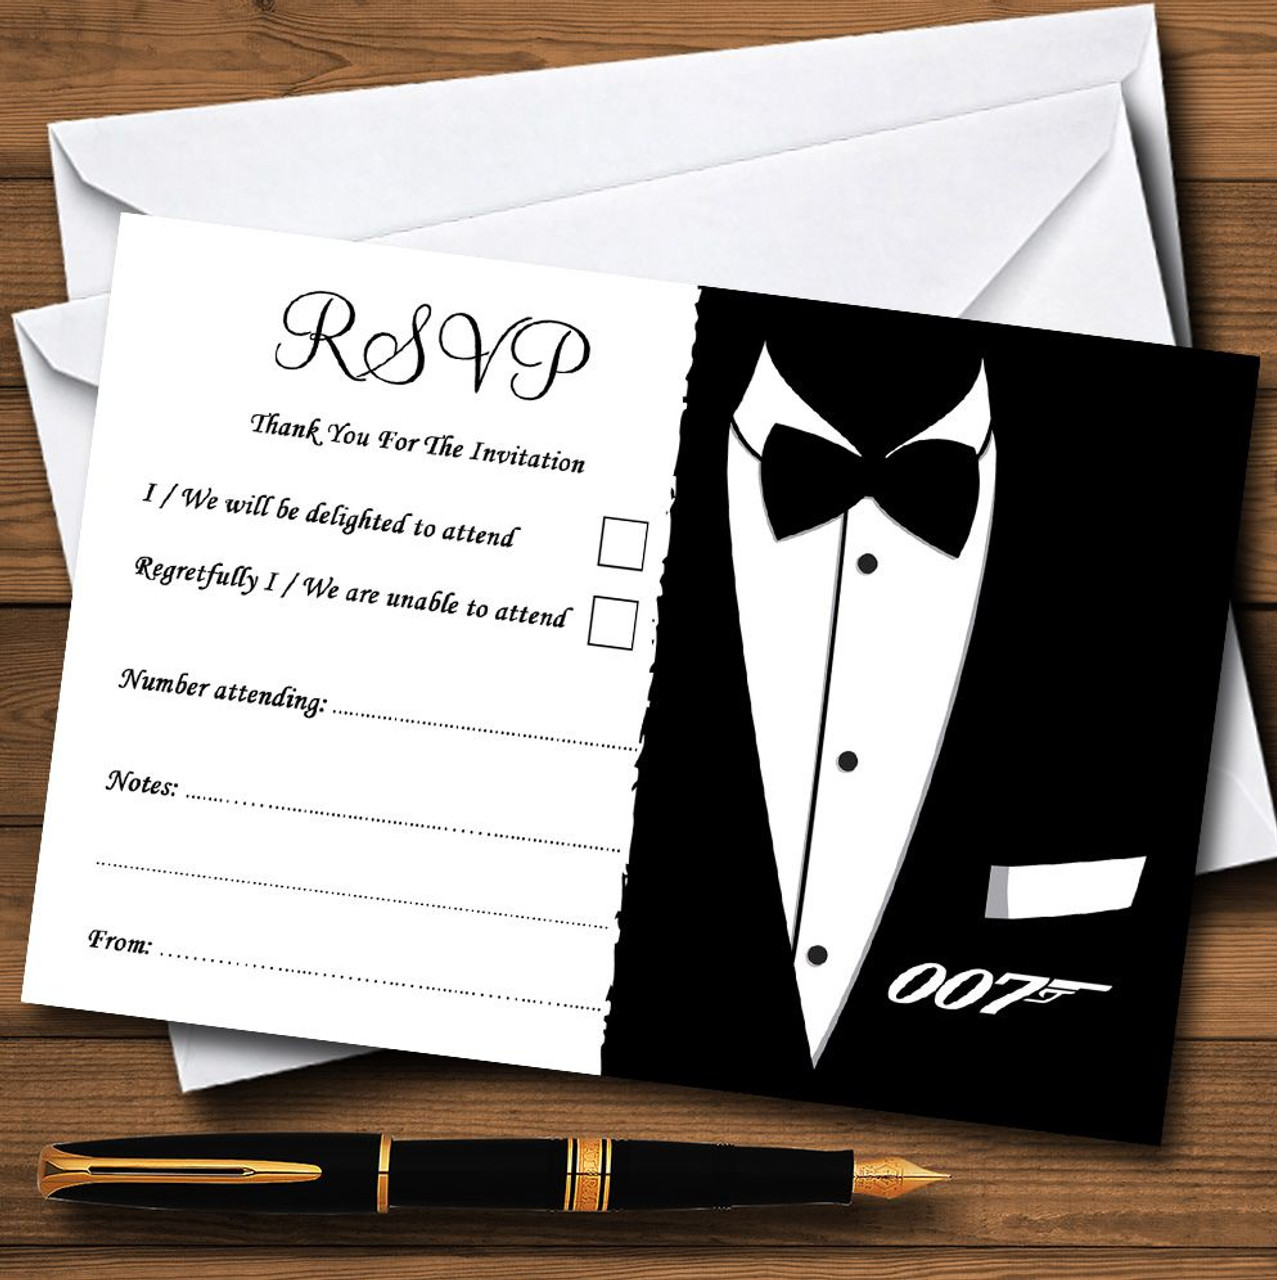 James bond personalised rsvp cards the card zoo james bond personalised rsvp cards stopboris Choice Image